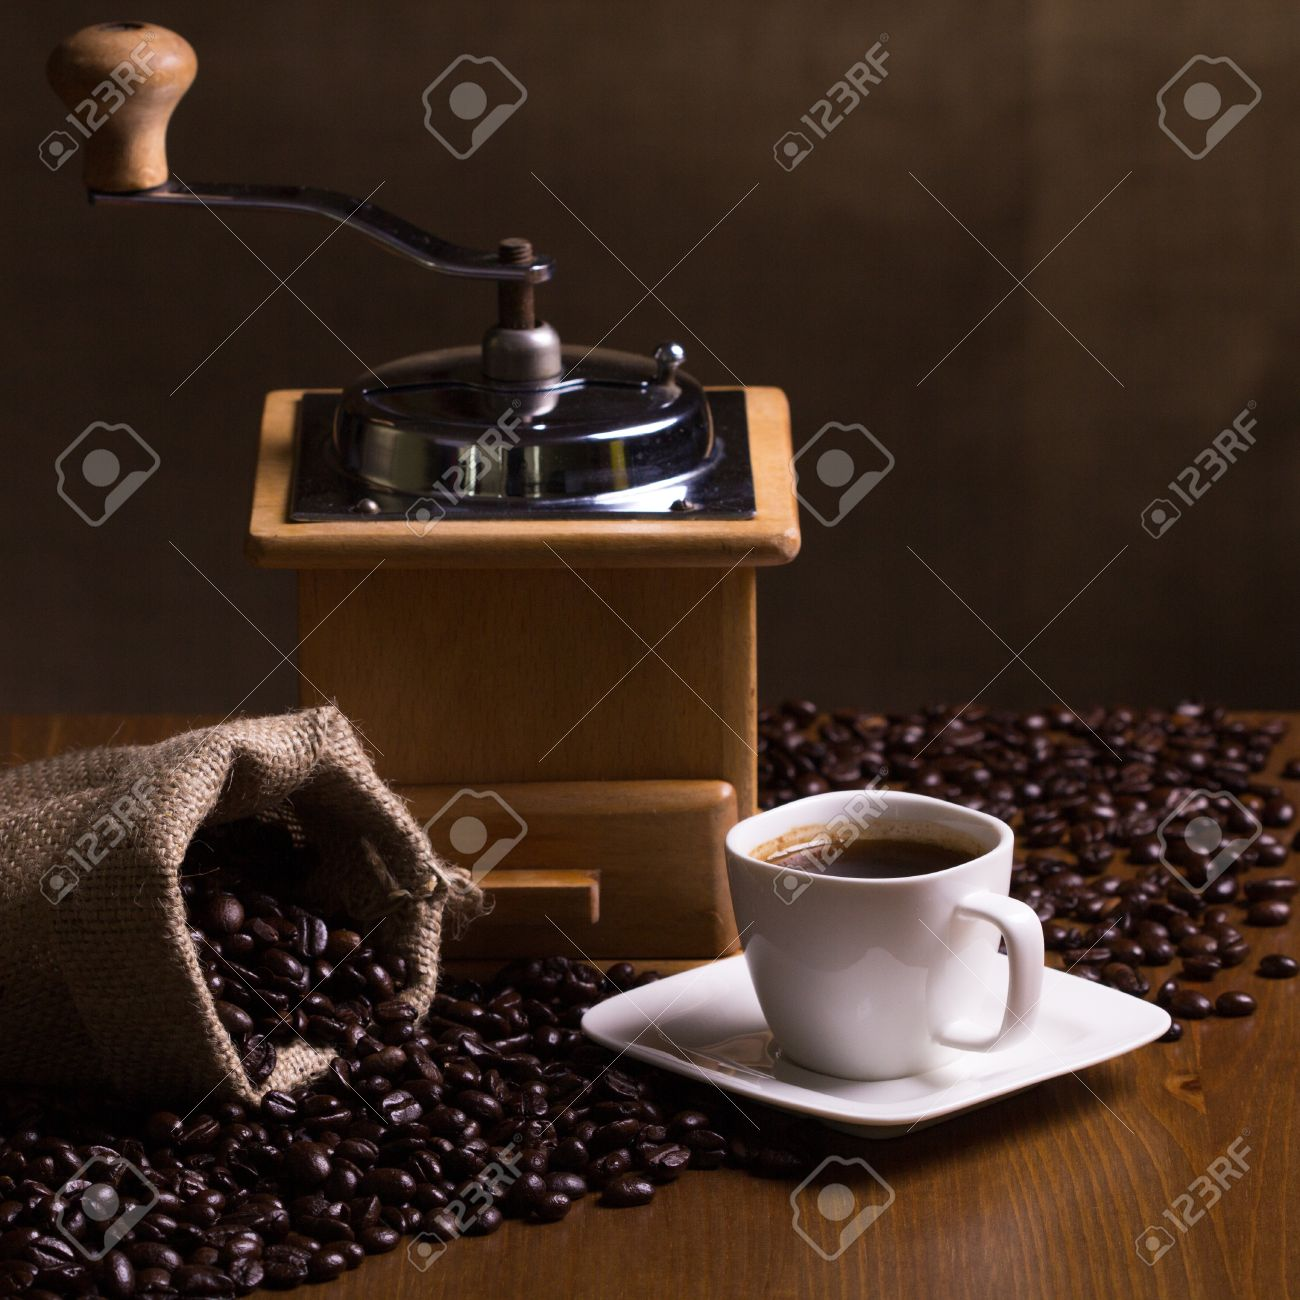 Still-life with coffee, cup with saucer, coffe mill, sac with beans and spices Stock Photo - 20870433